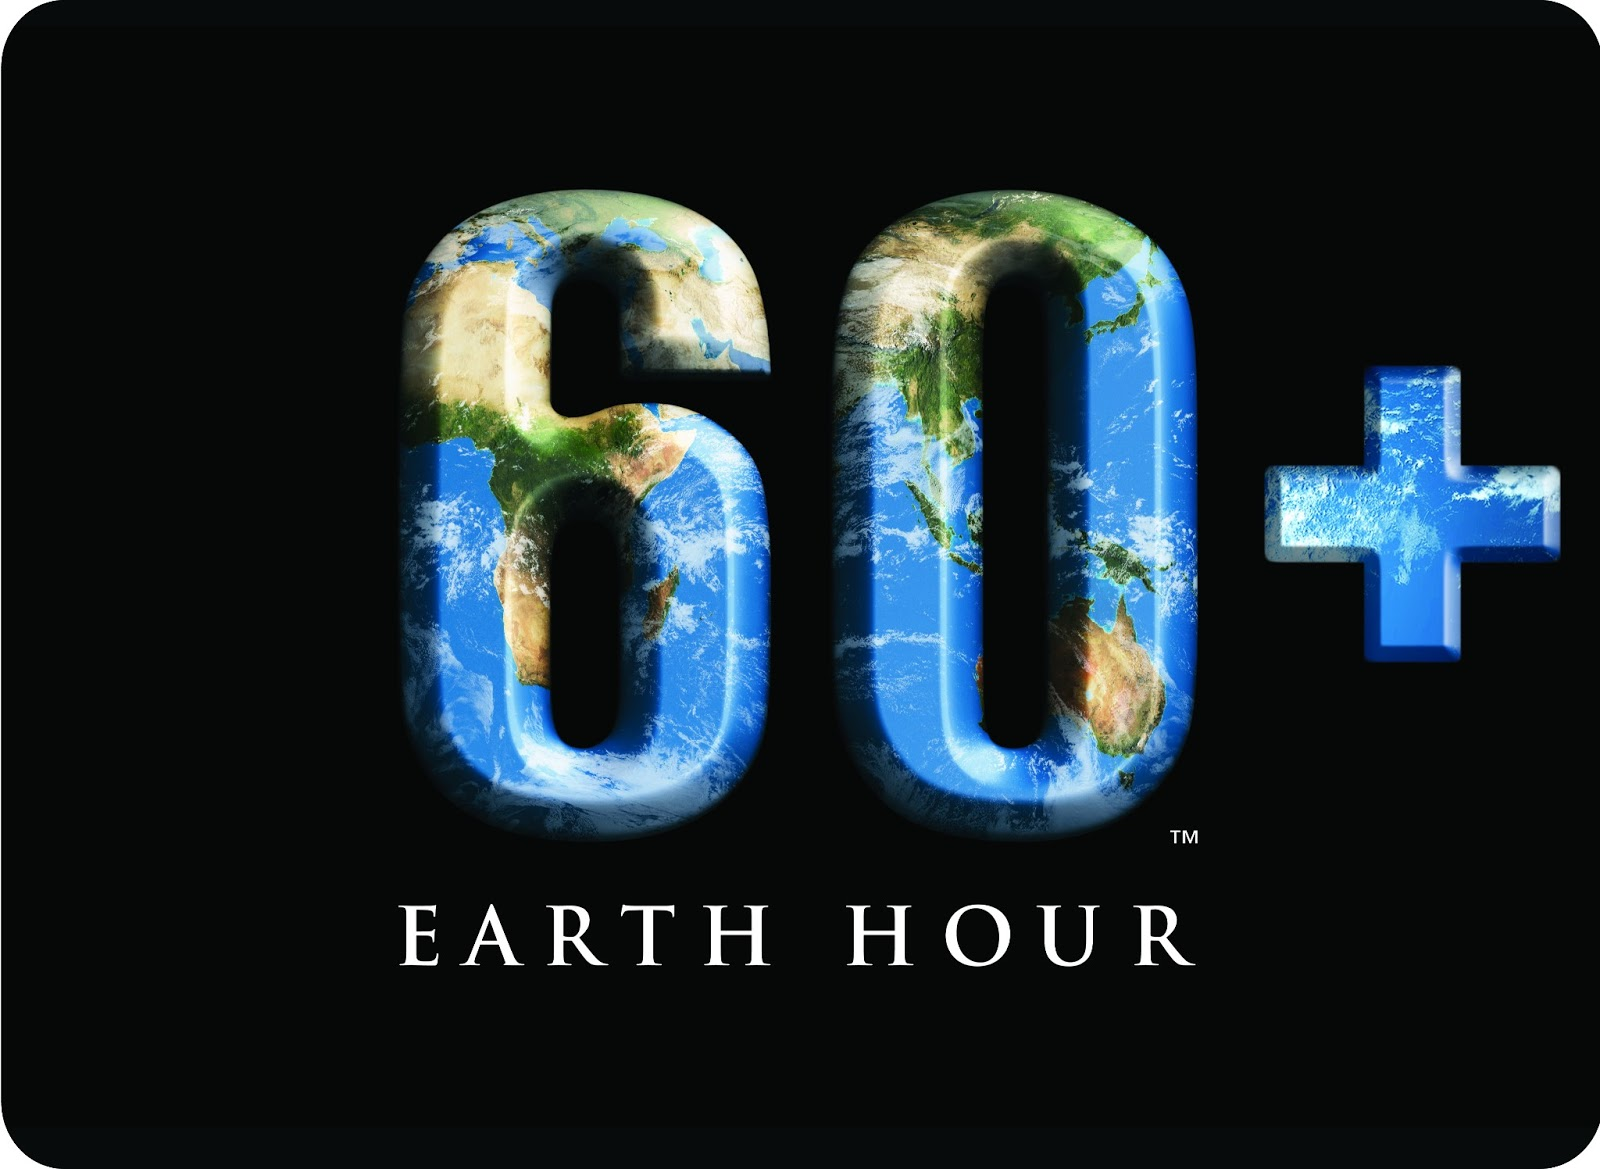 http://www.earthhour.org/